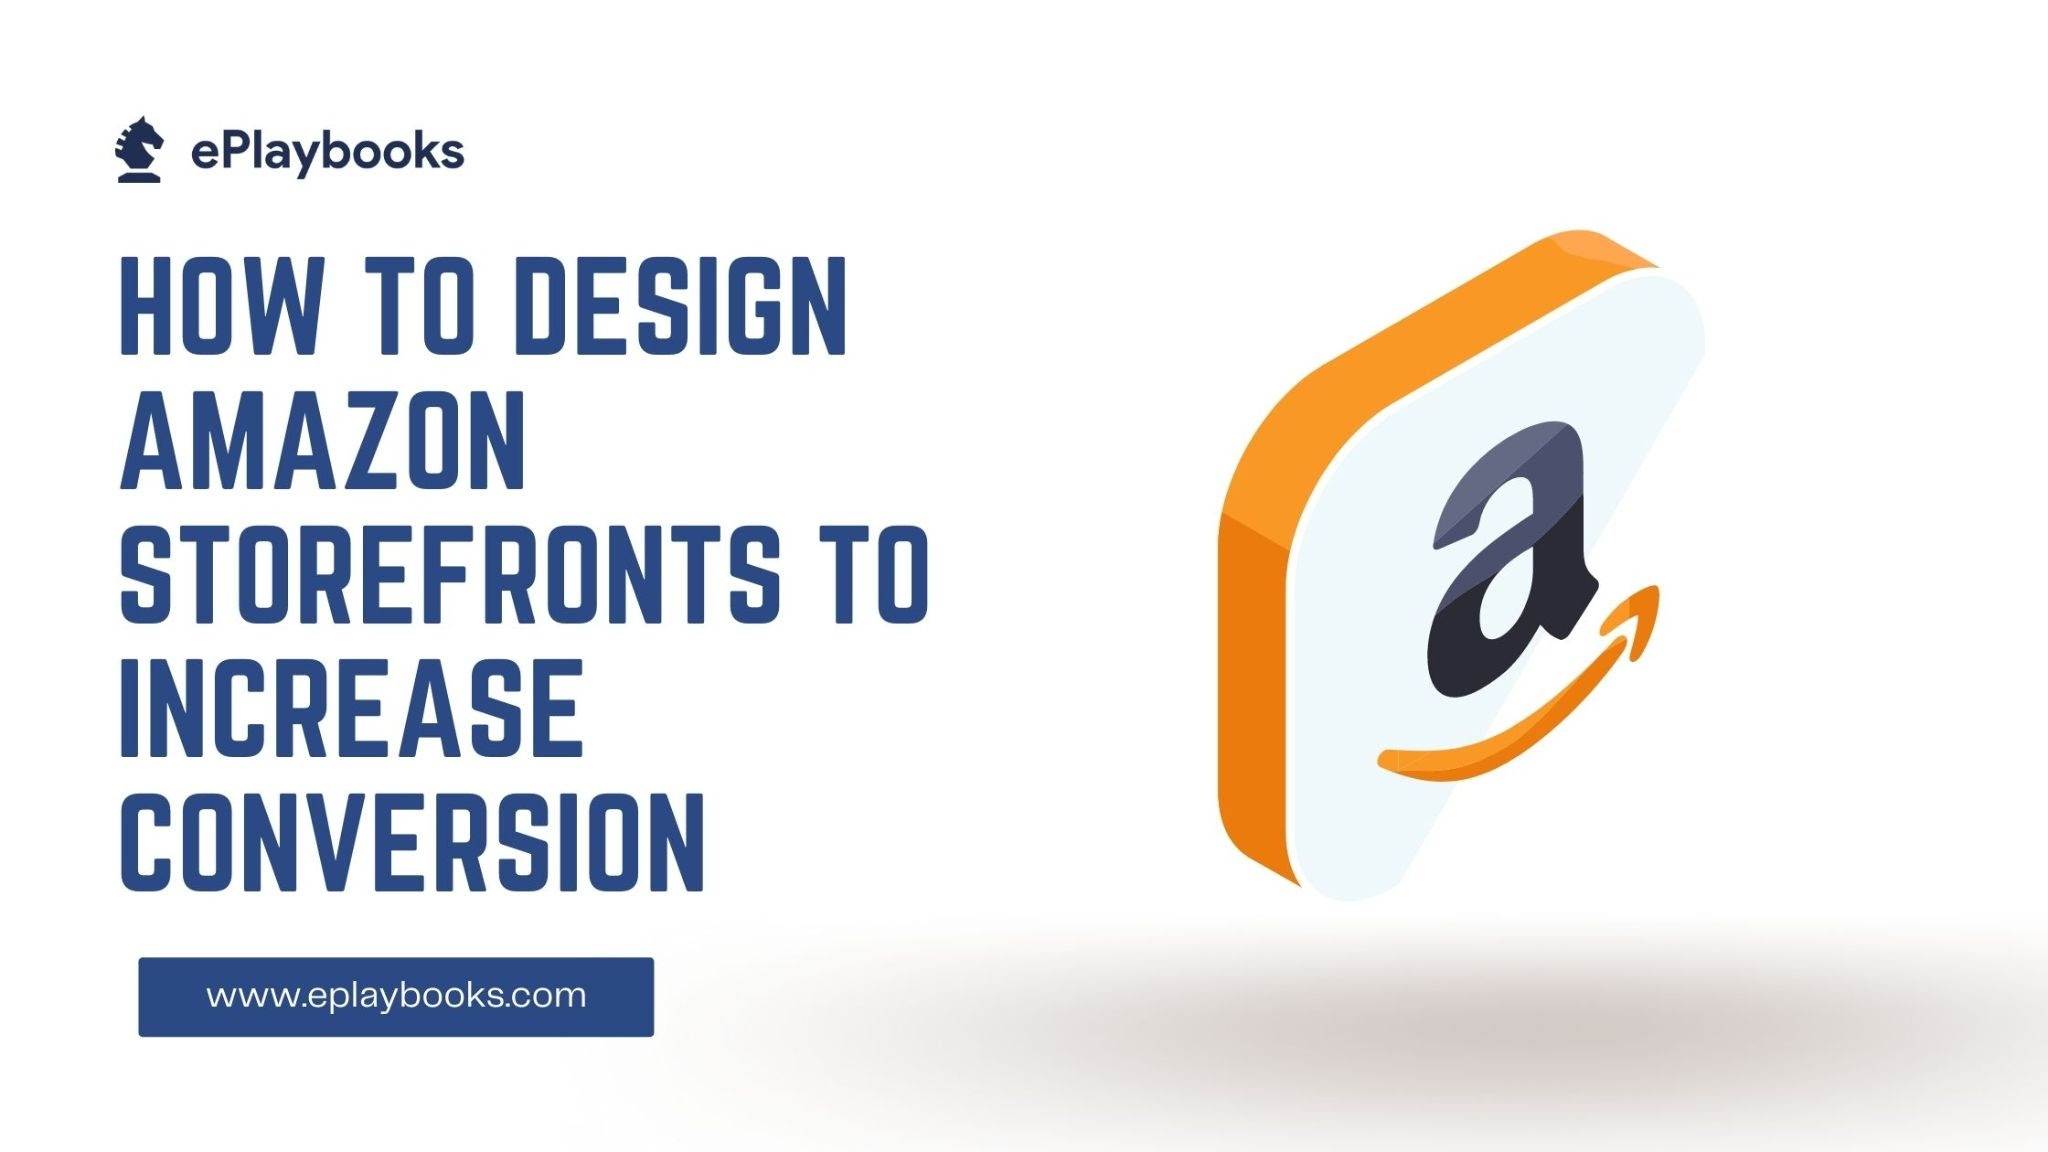 How to design Amazon storefronts to increase conversion